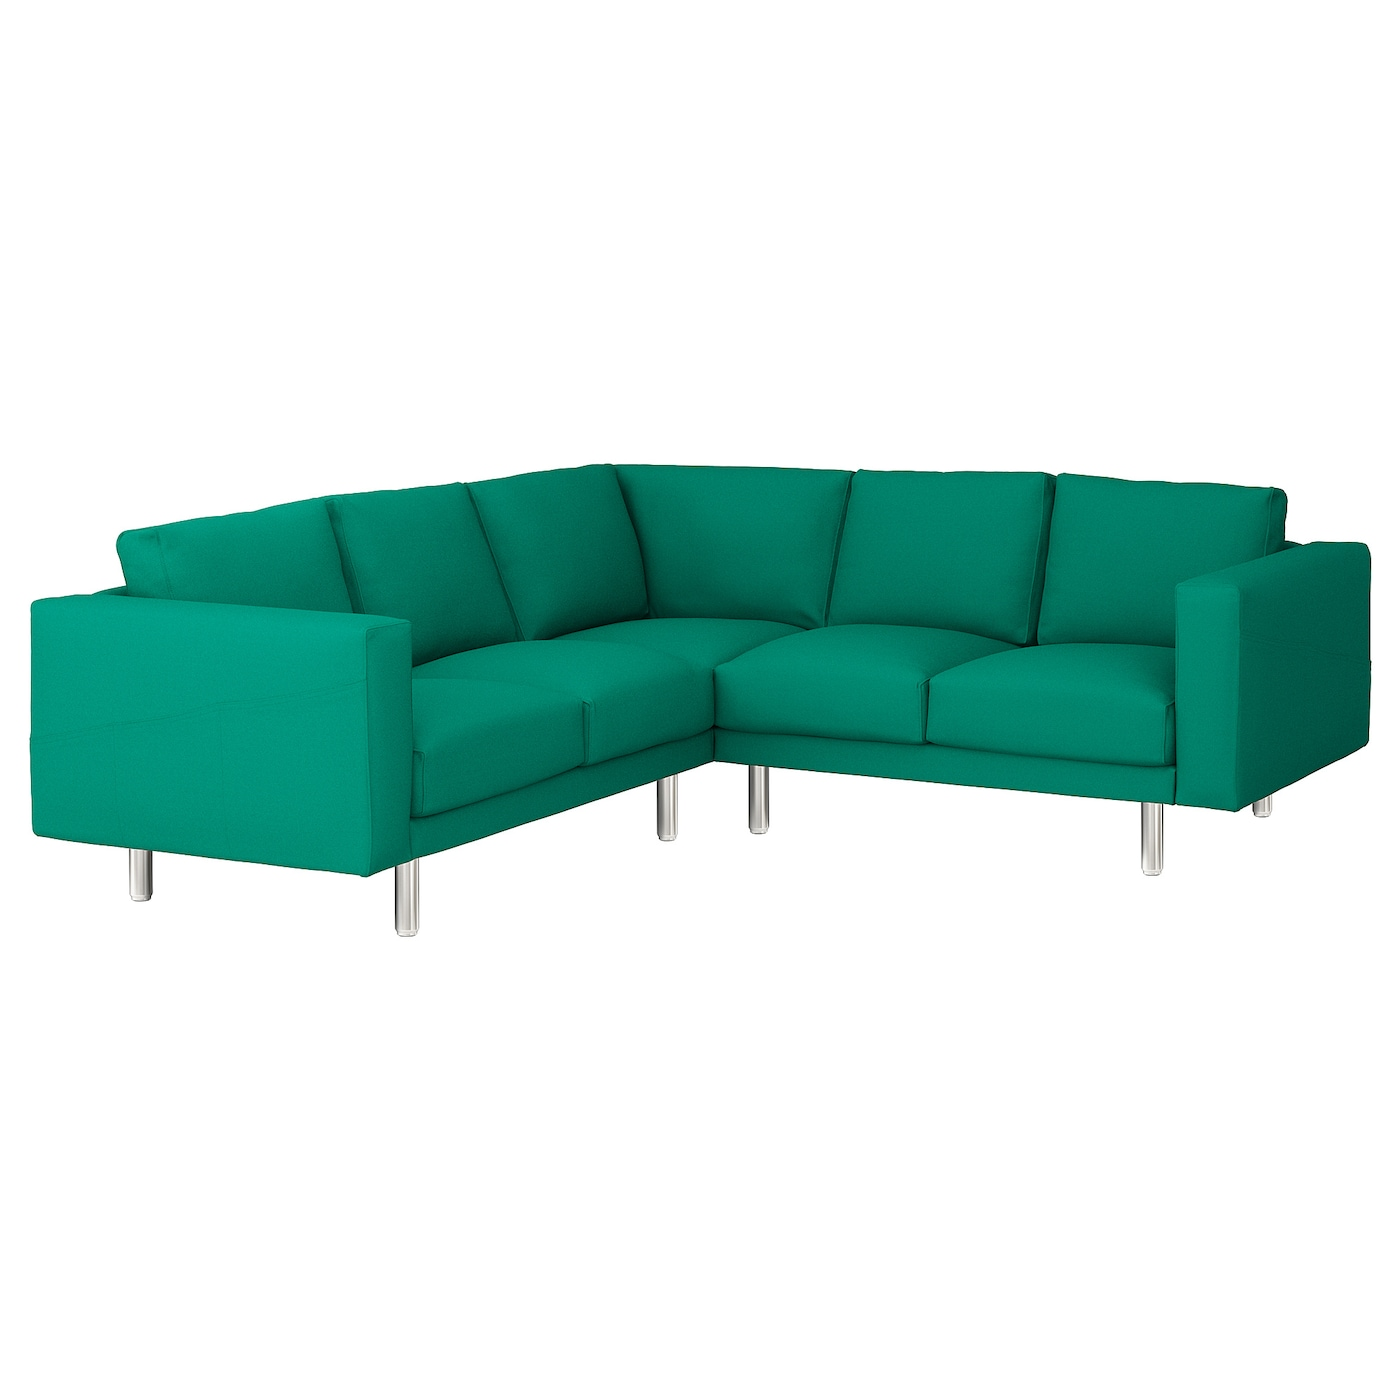 IKEA NORSBORG corner sofa, 4-seat 10 year guarantee. Read about the terms in the guarantee brochure.